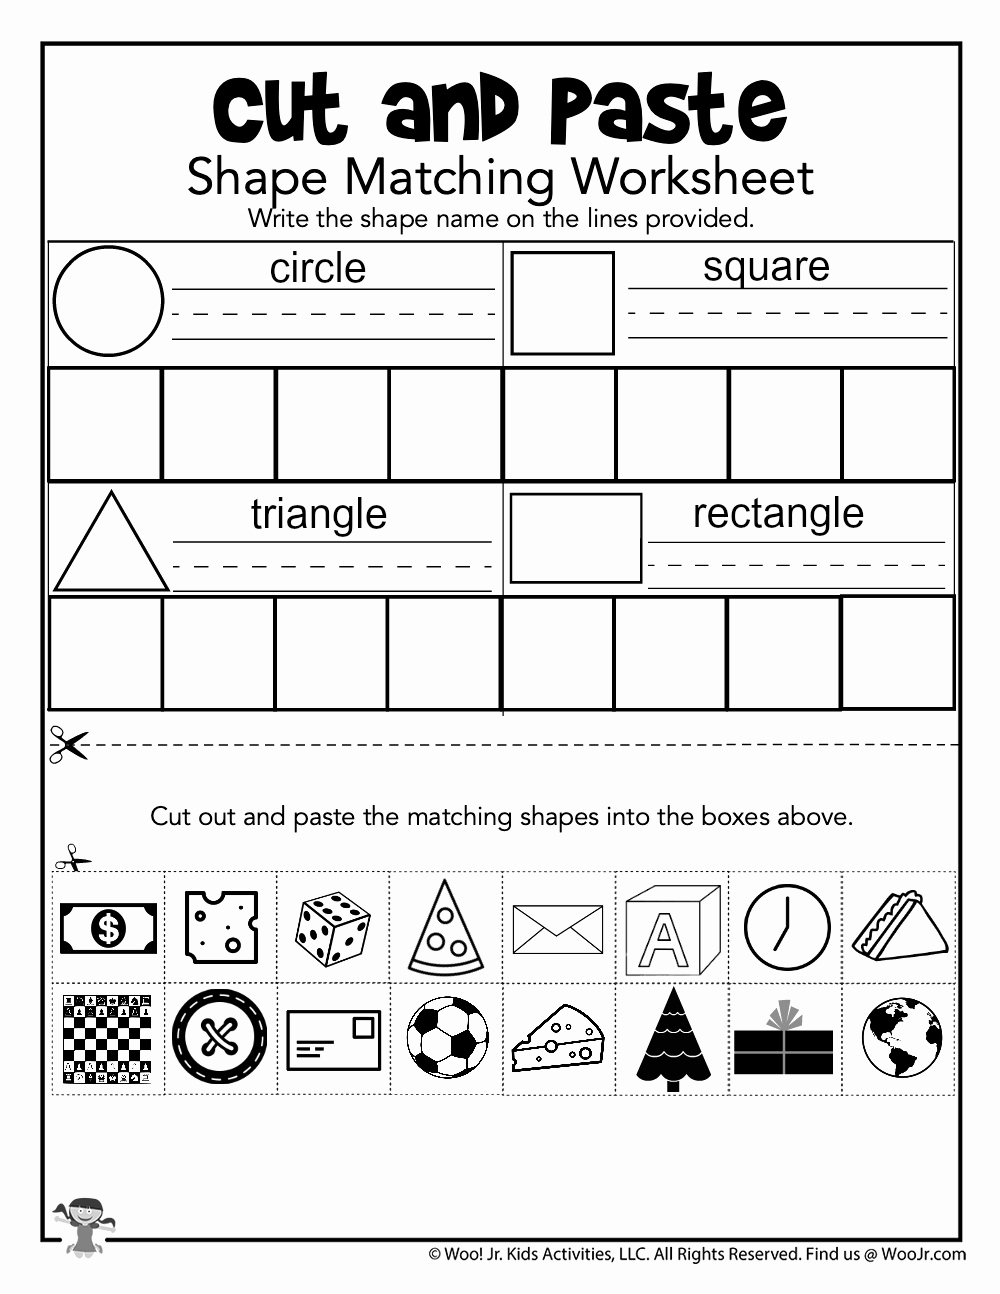 Cut and Paste Worksheets Free Awesome Cut and Paste Shape Matching Practice